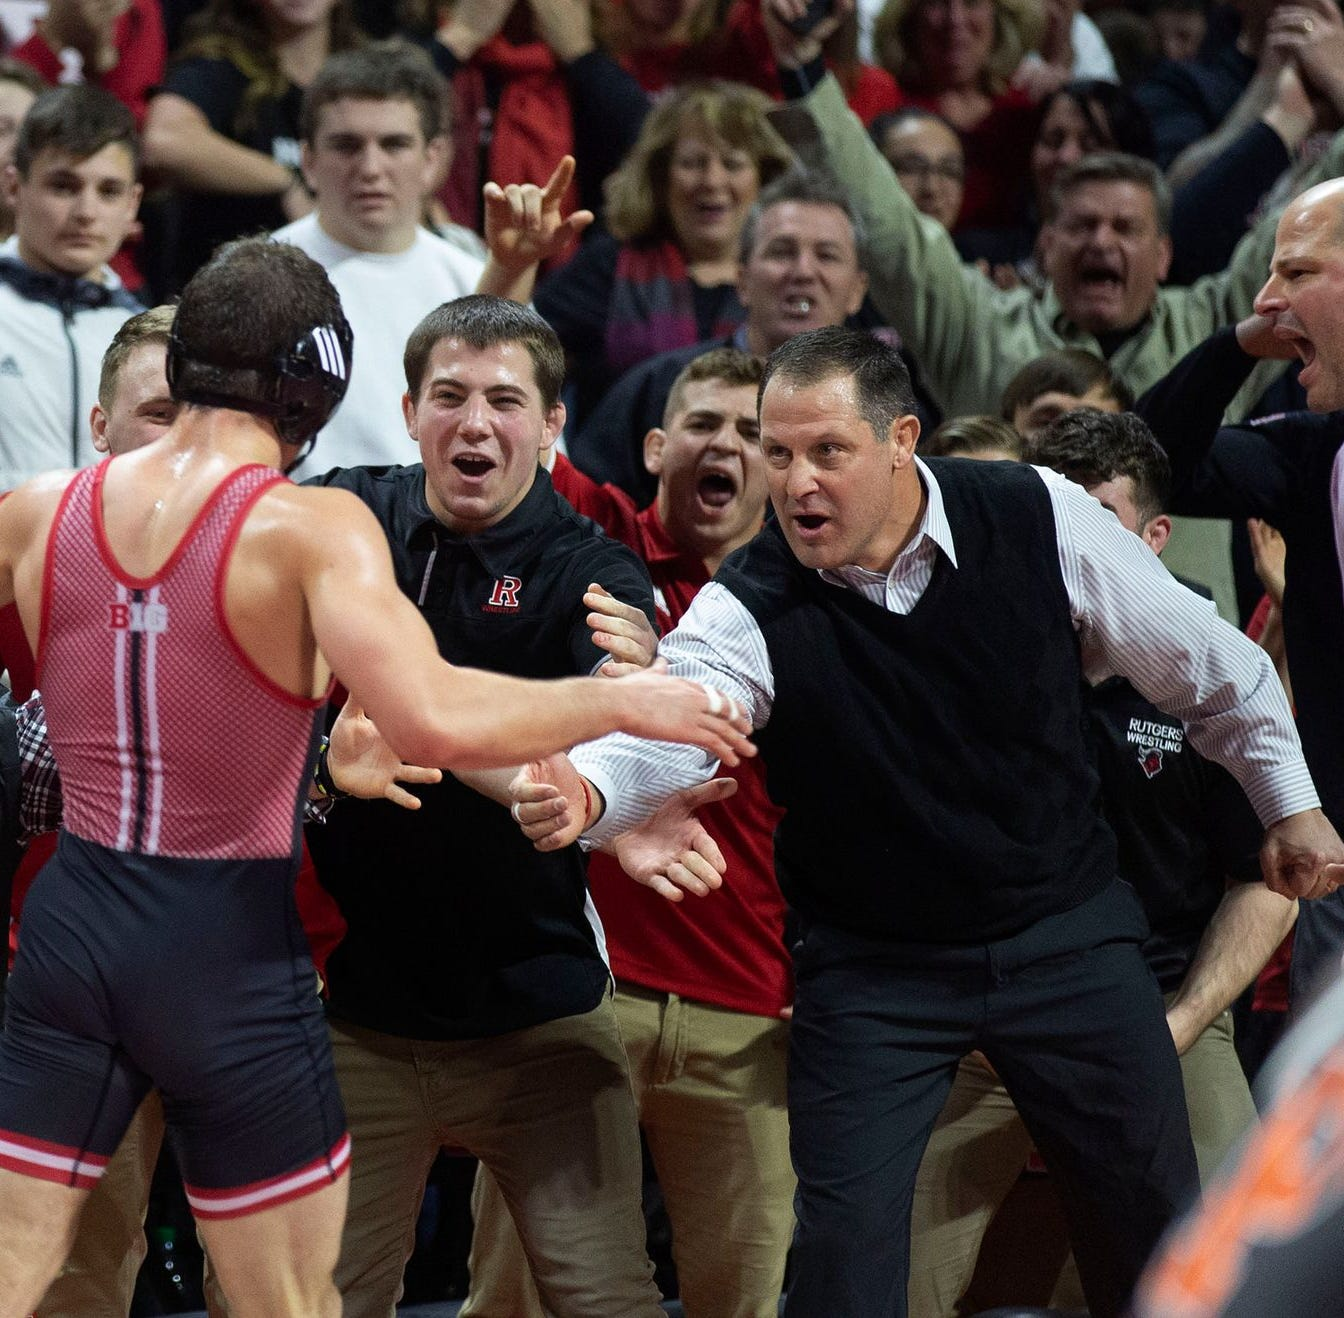 Rutgers wrestling: After emotional weekend, Scarlet Knights travel to Indiana, Purdue